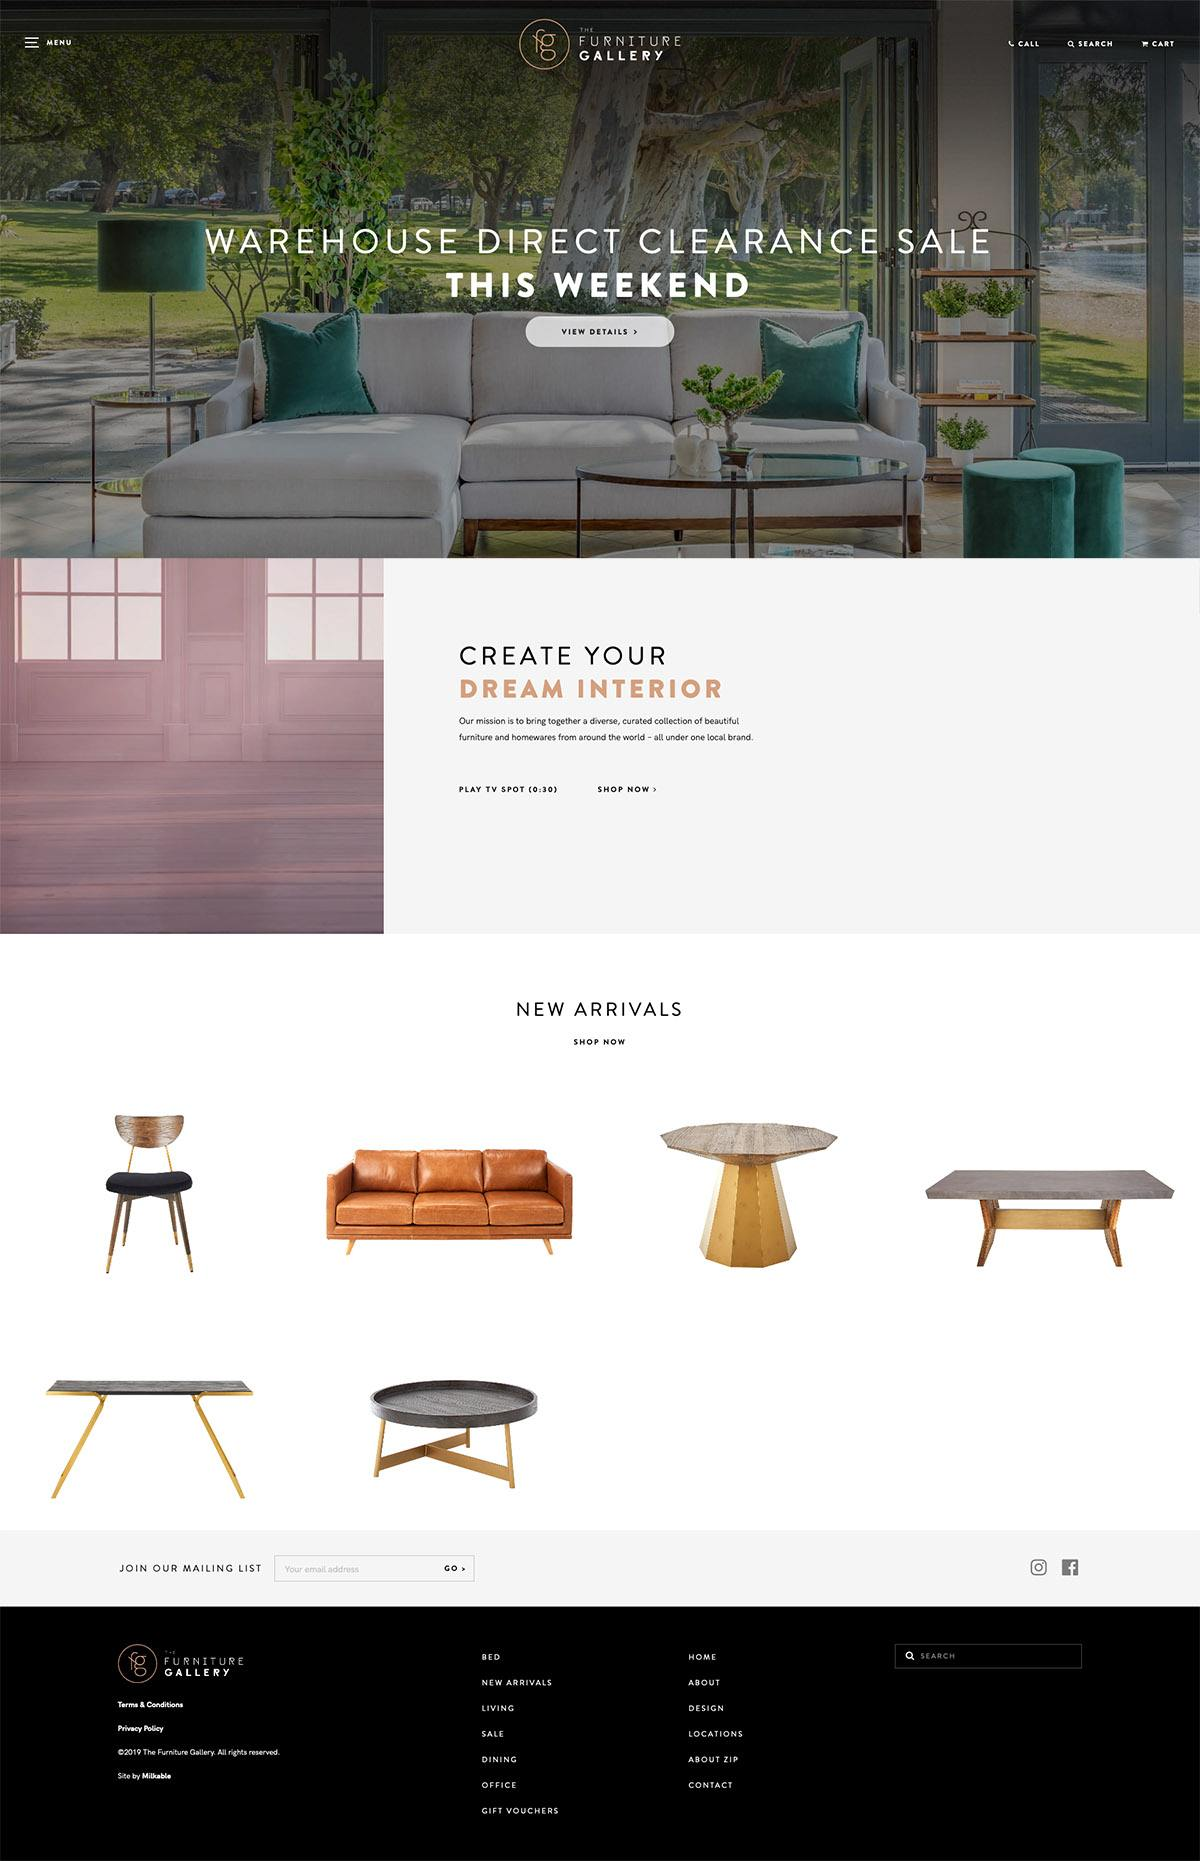 eCommerce website: The Furniture Gallery